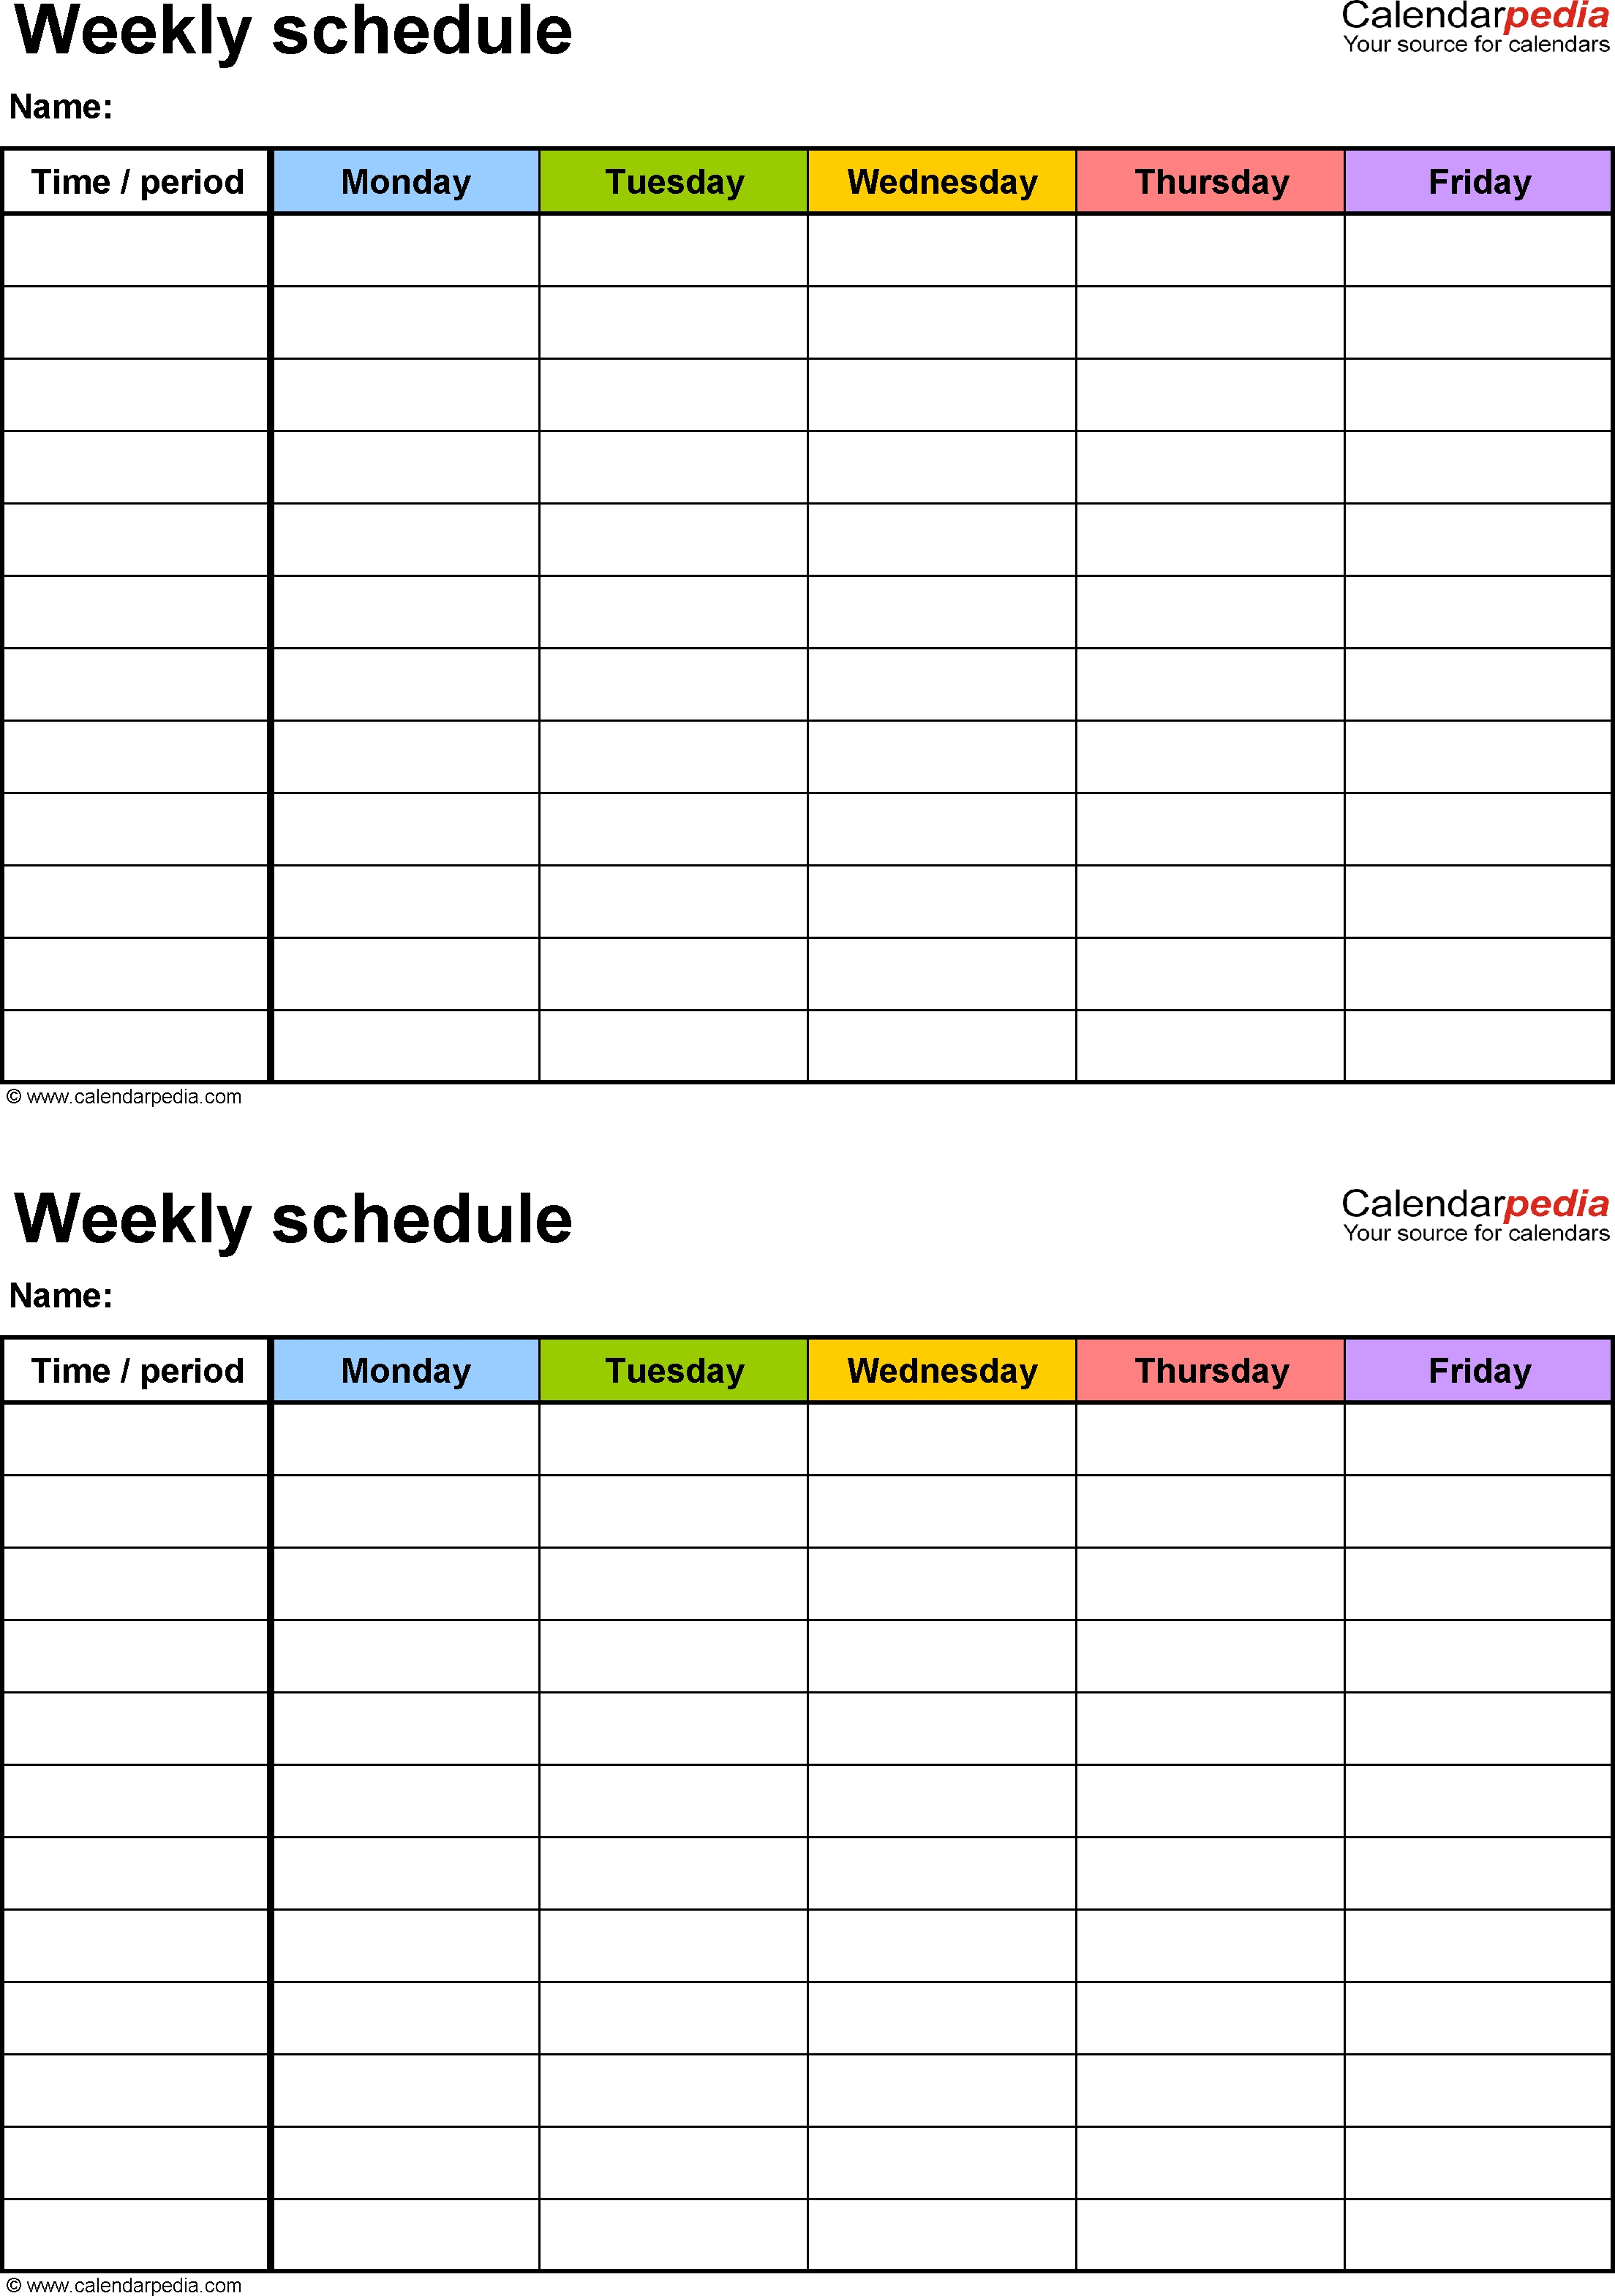 Free Weekly Schedule Templates For Pdf - 18 Templates regarding Extra Large Printable Blank Weekly Employee Schedule